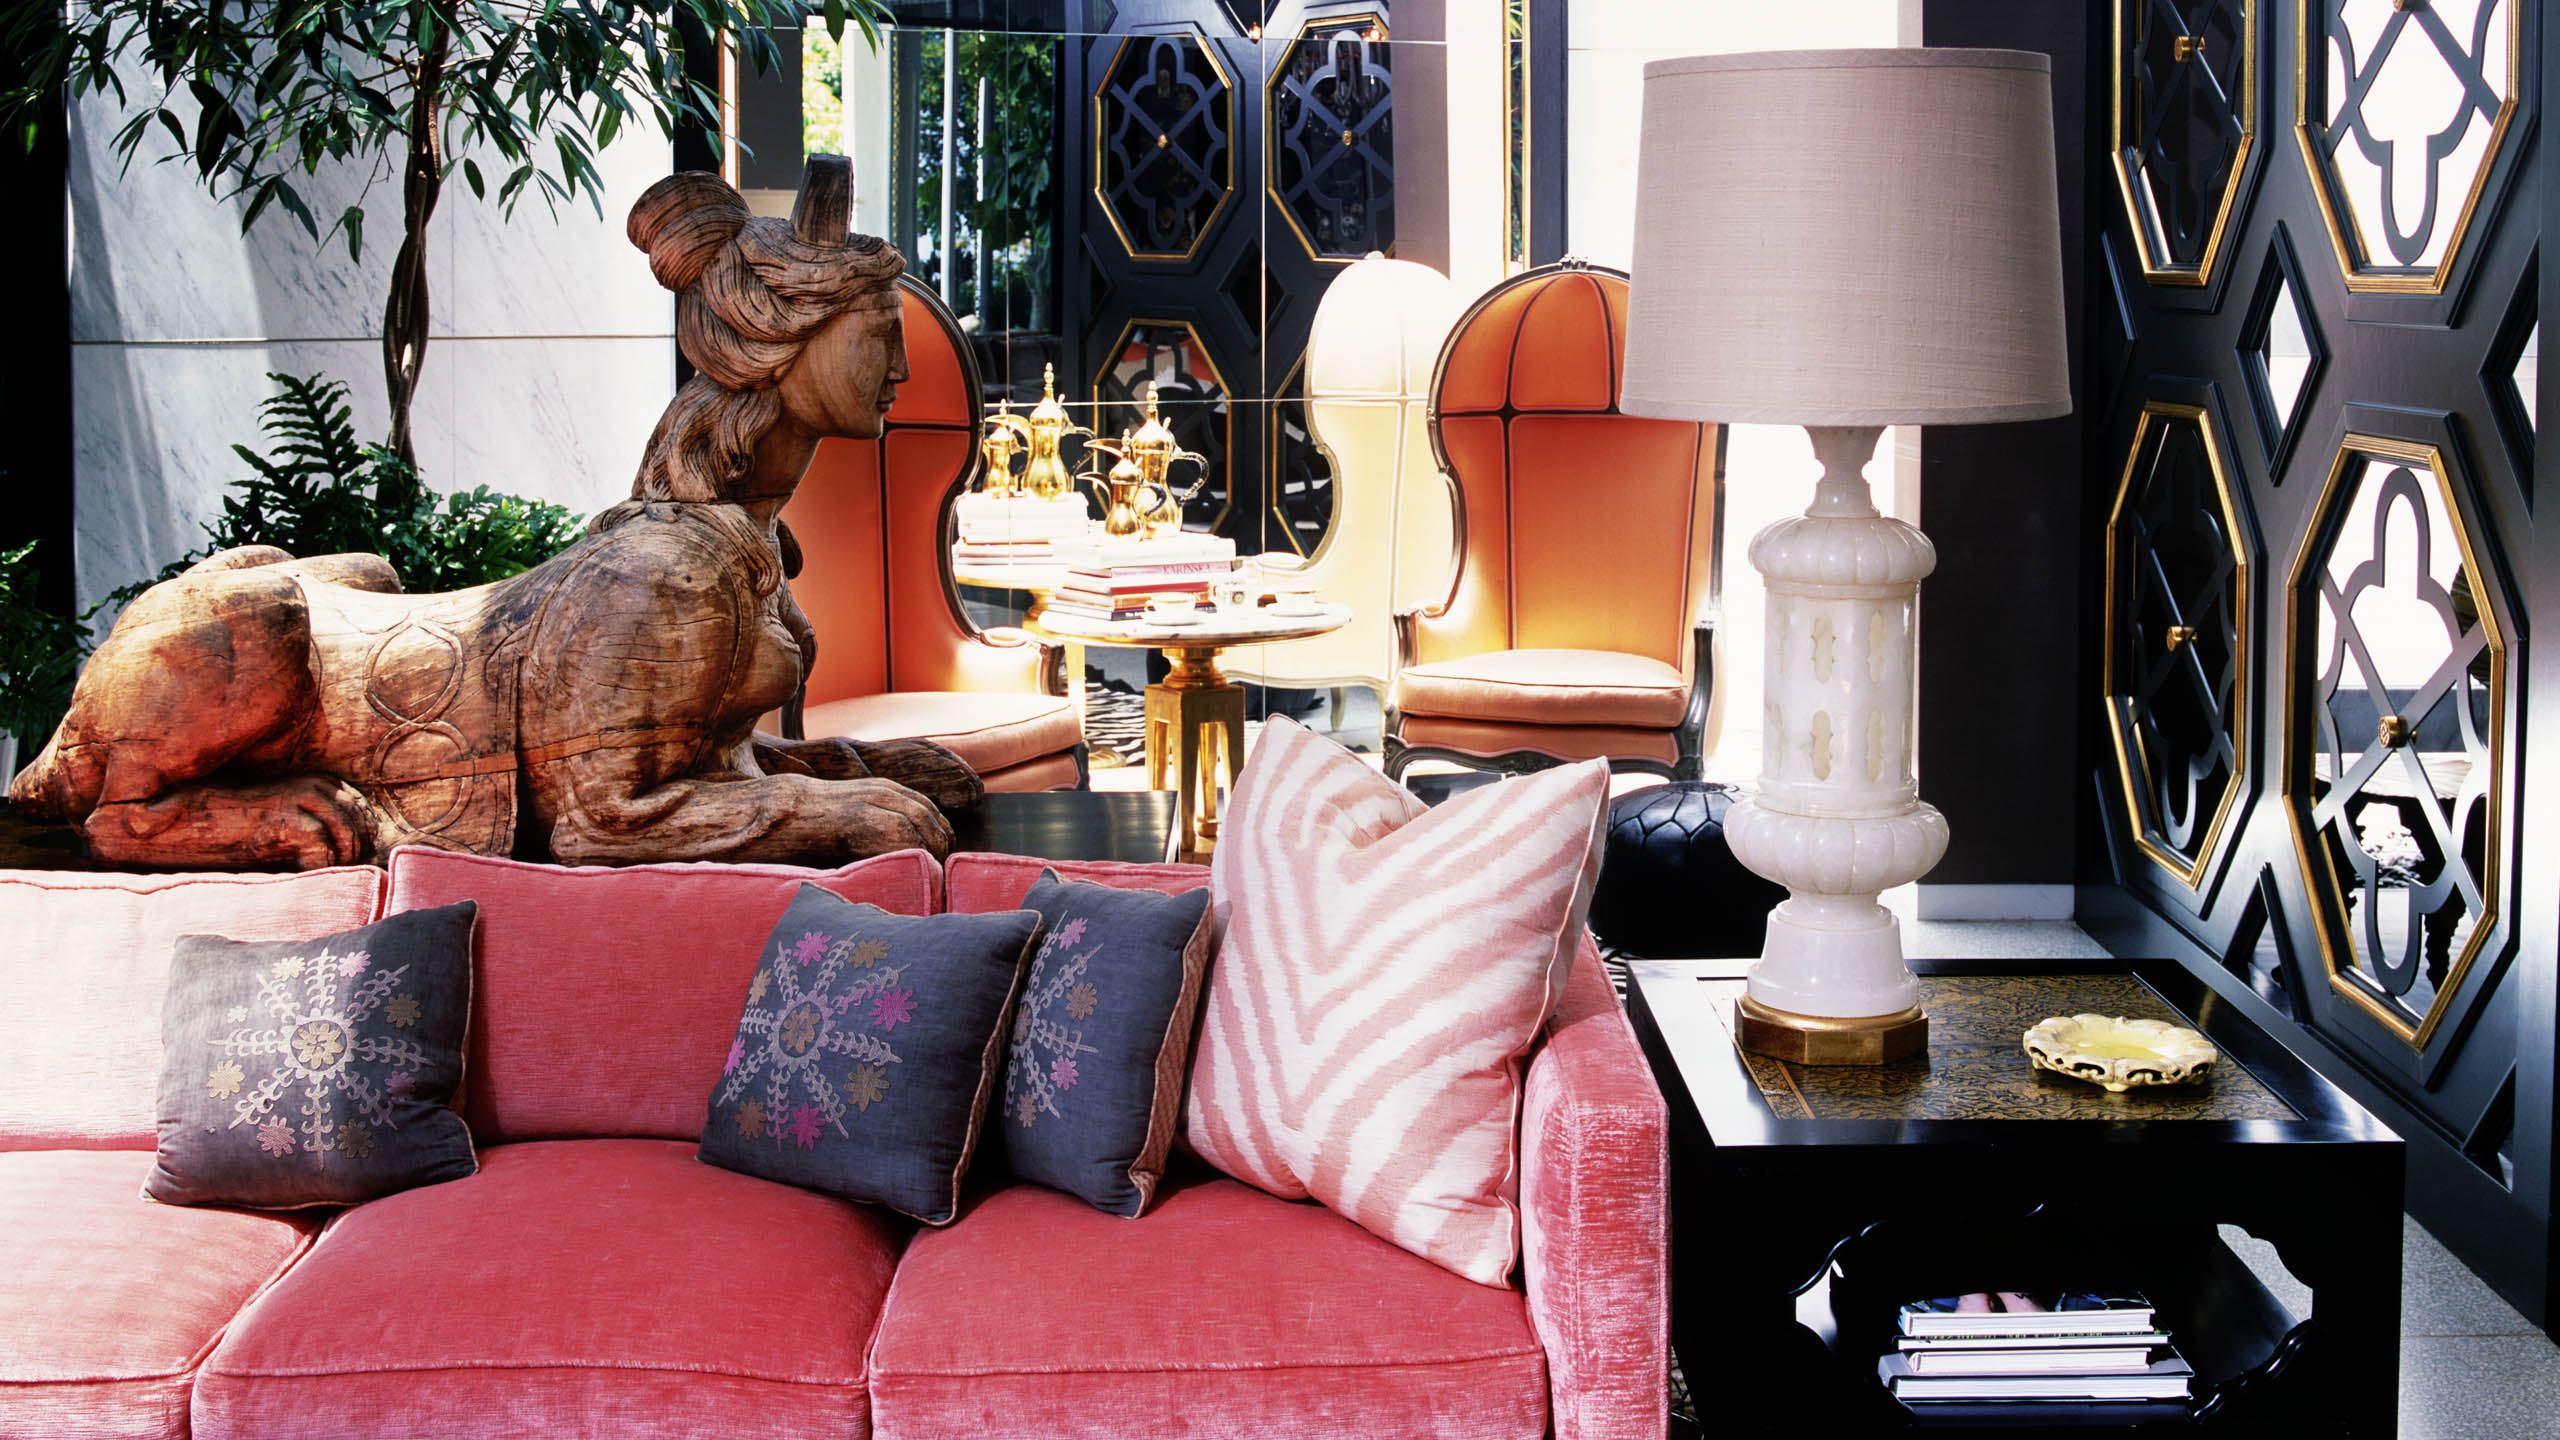 Doheny Residence Kelly Wearstler  interior designers Best Interior Designers: top projects by Kelly Wearstler Doheny Residence Kelly Wearstler 1